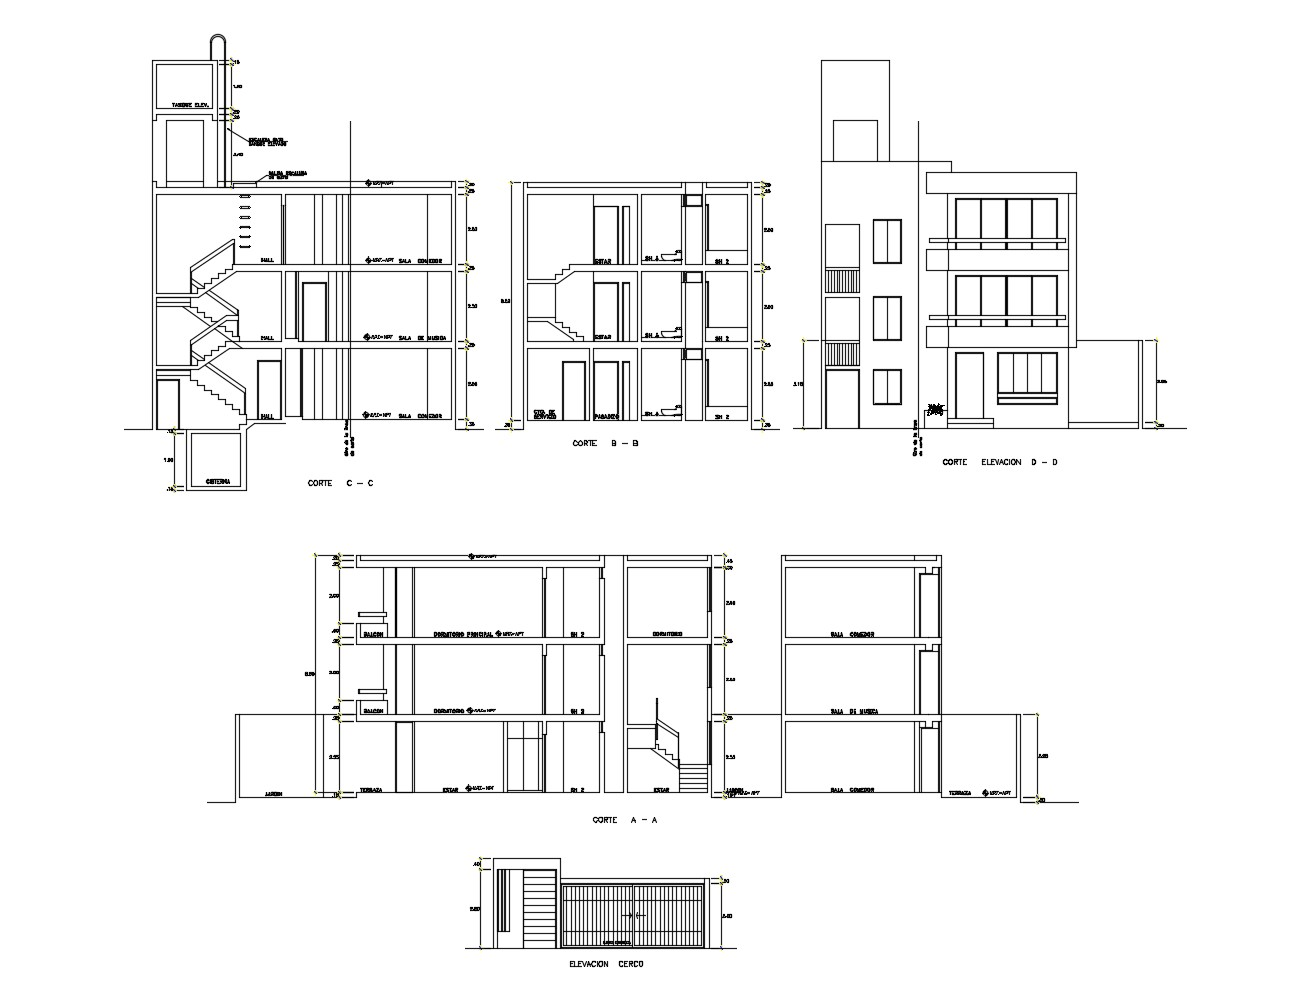 Autocad drawing of the apartment with elevation and section